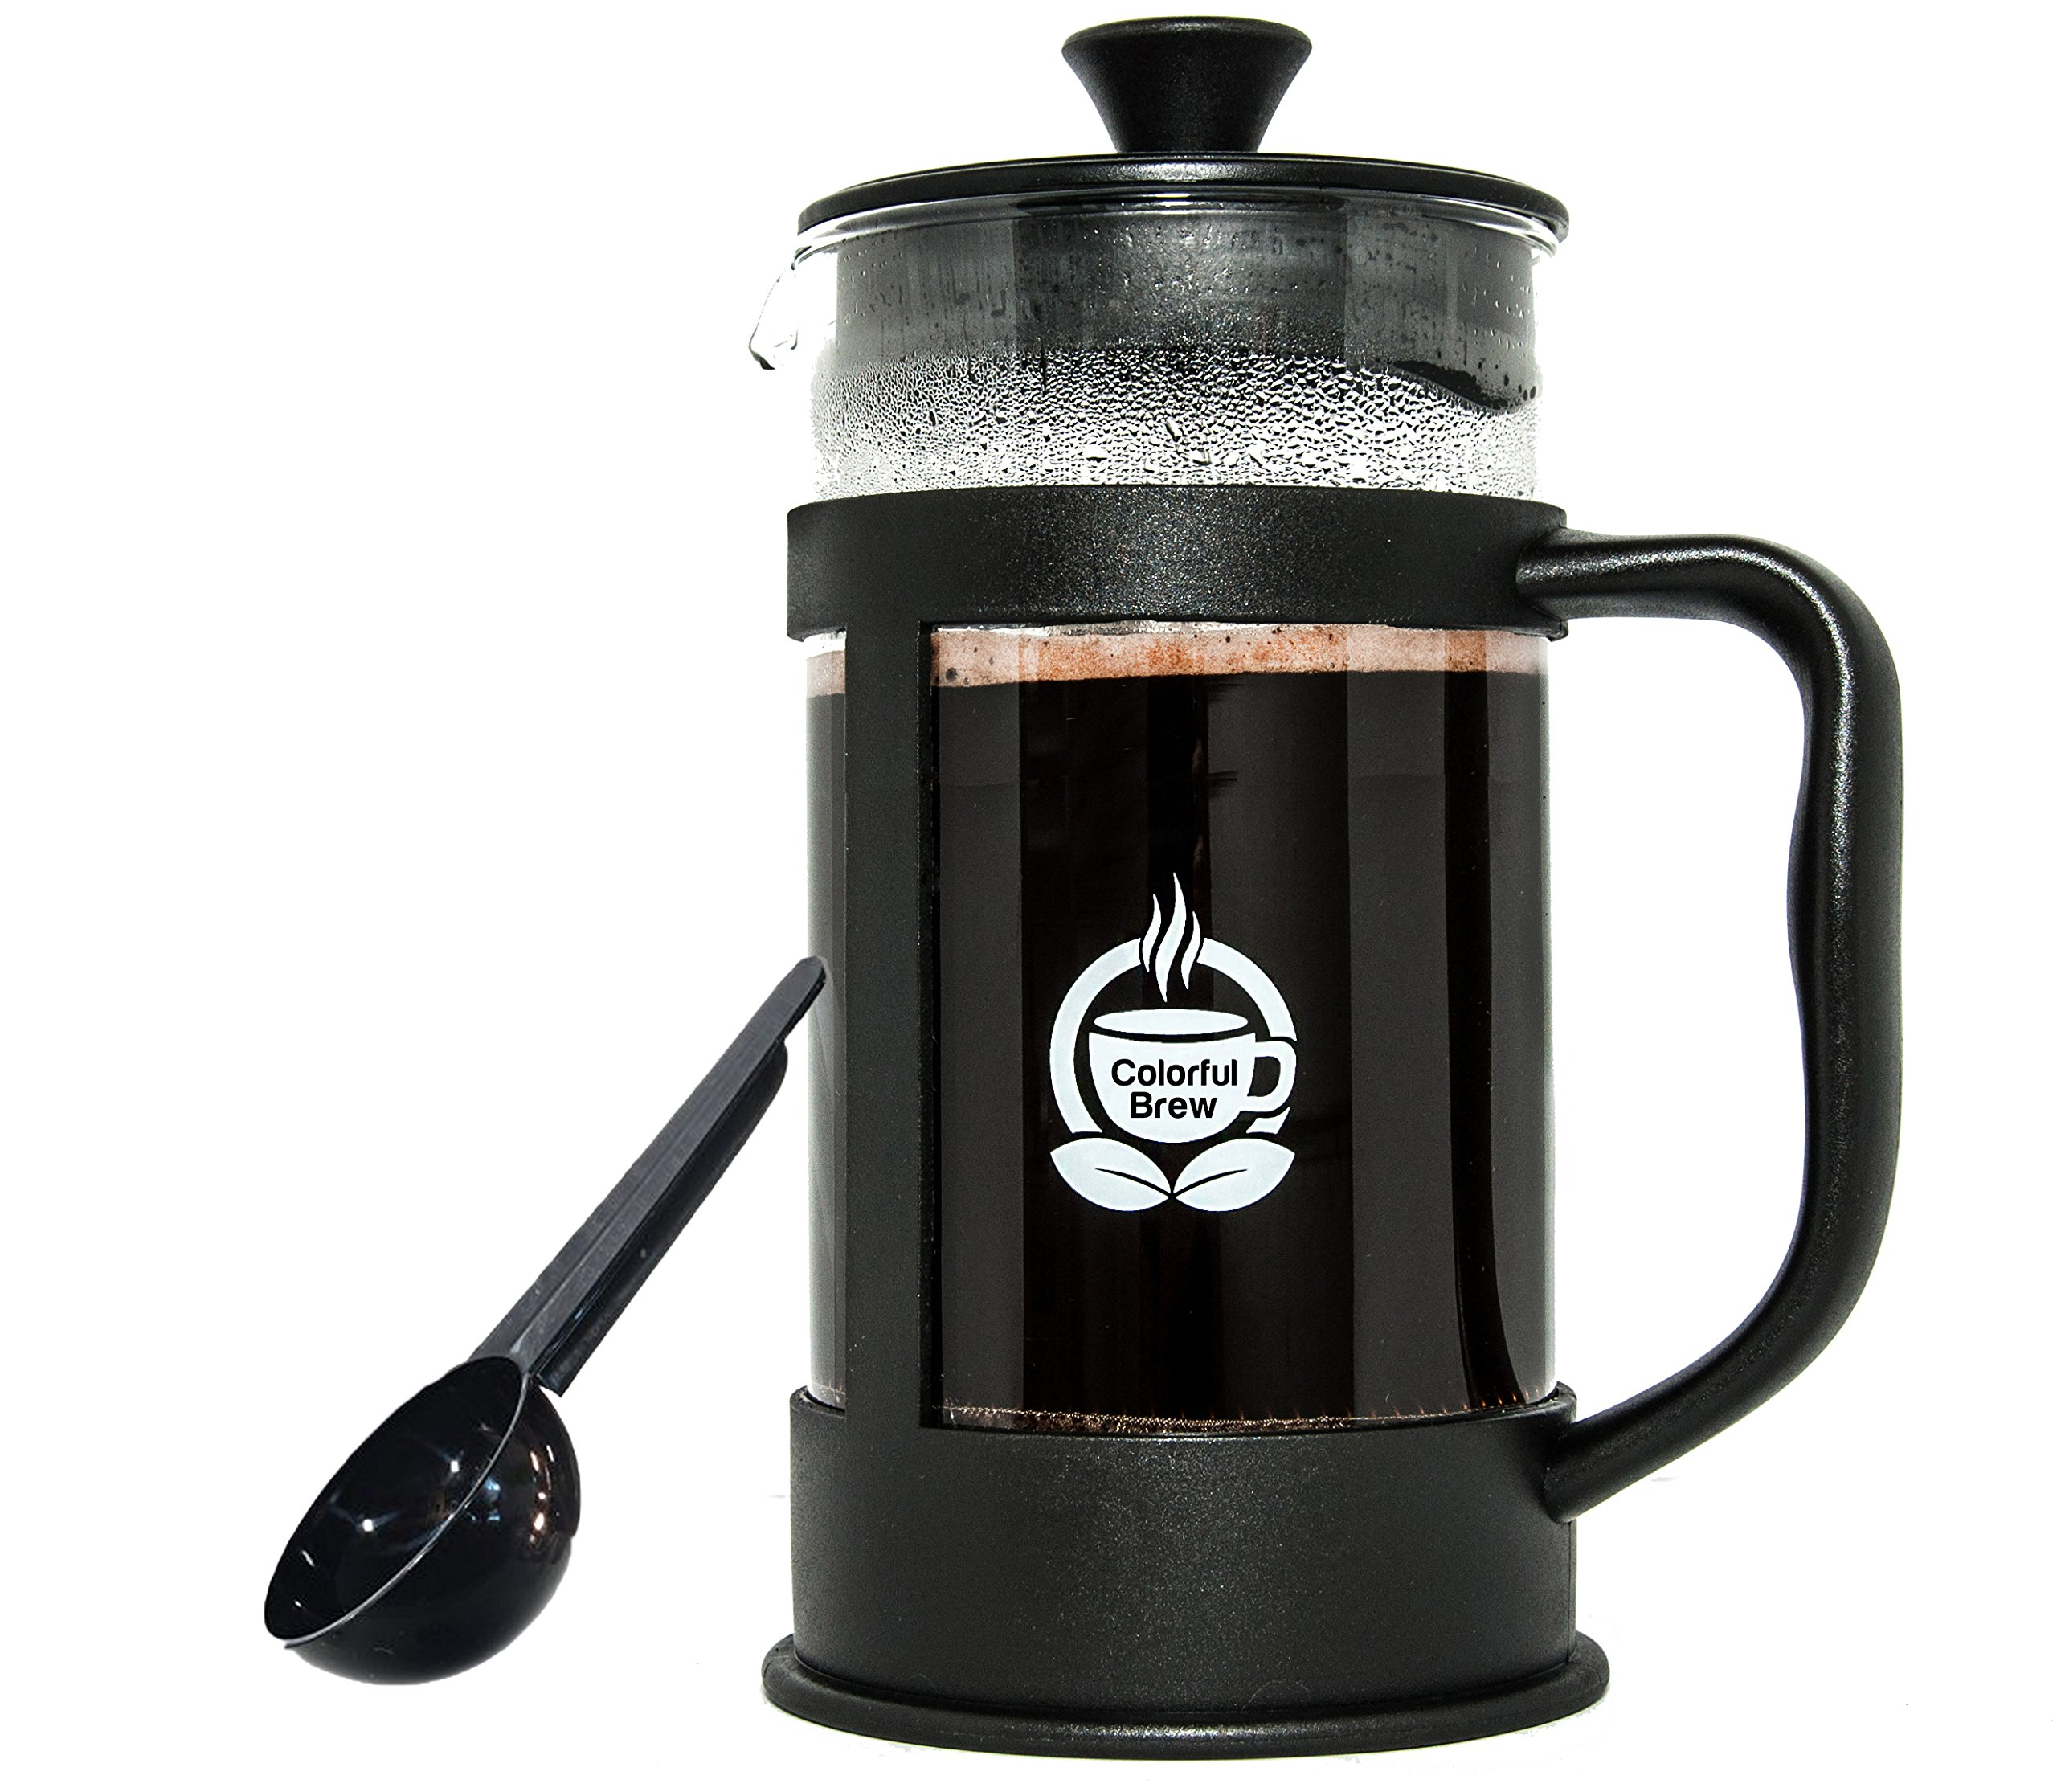 French Press Coffee Maker Large 34 Ounces Strongest and Thickest Glass